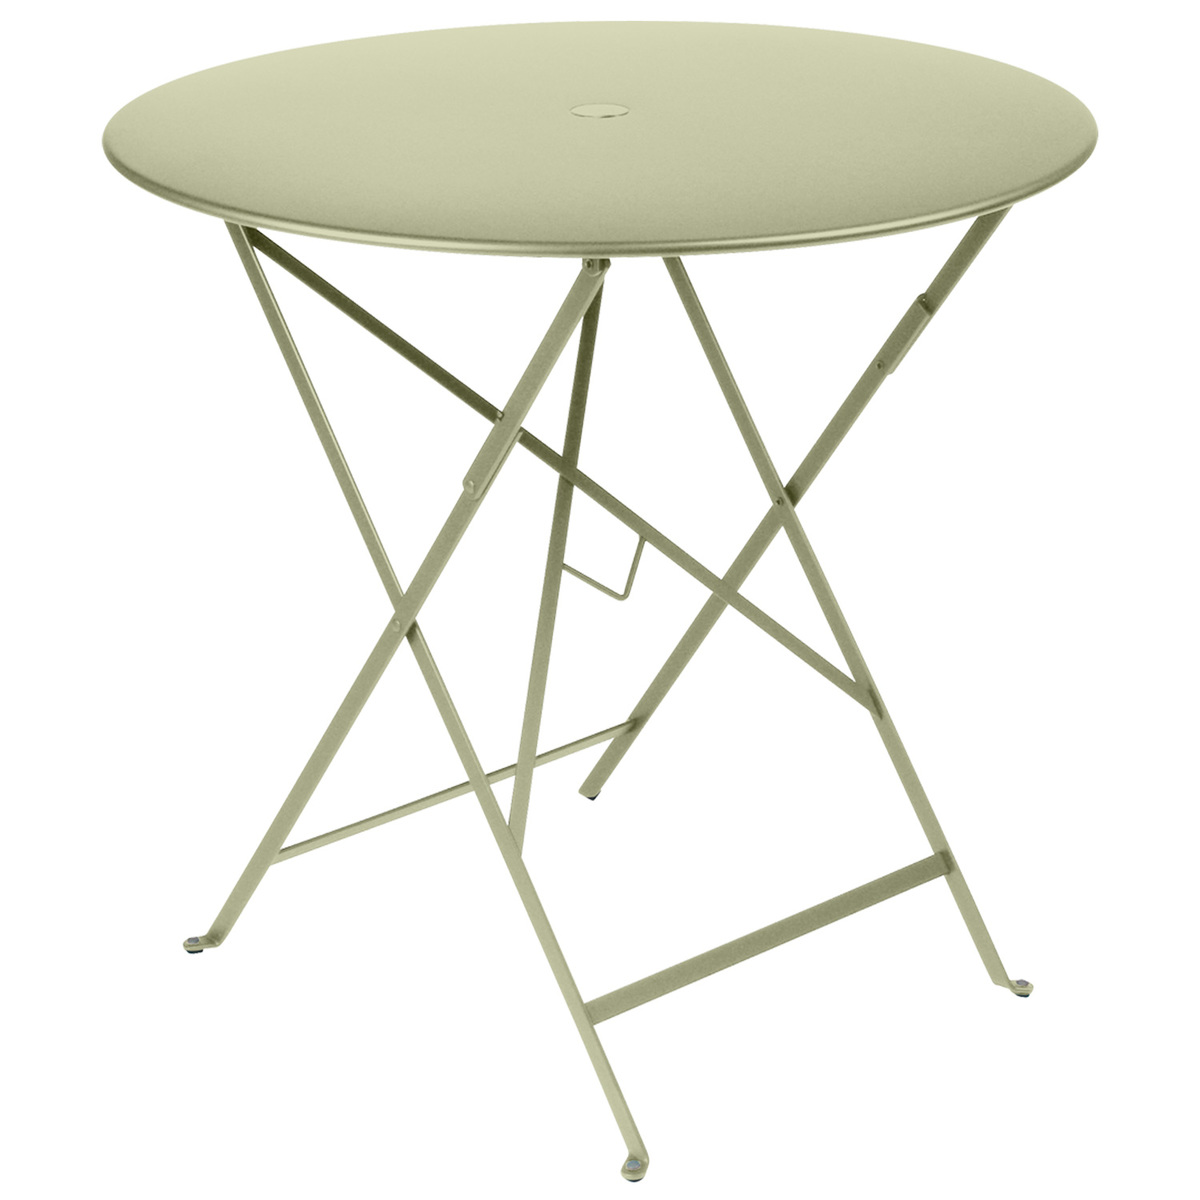 Fermob Bistro table 77 cm, willow green from Fermob